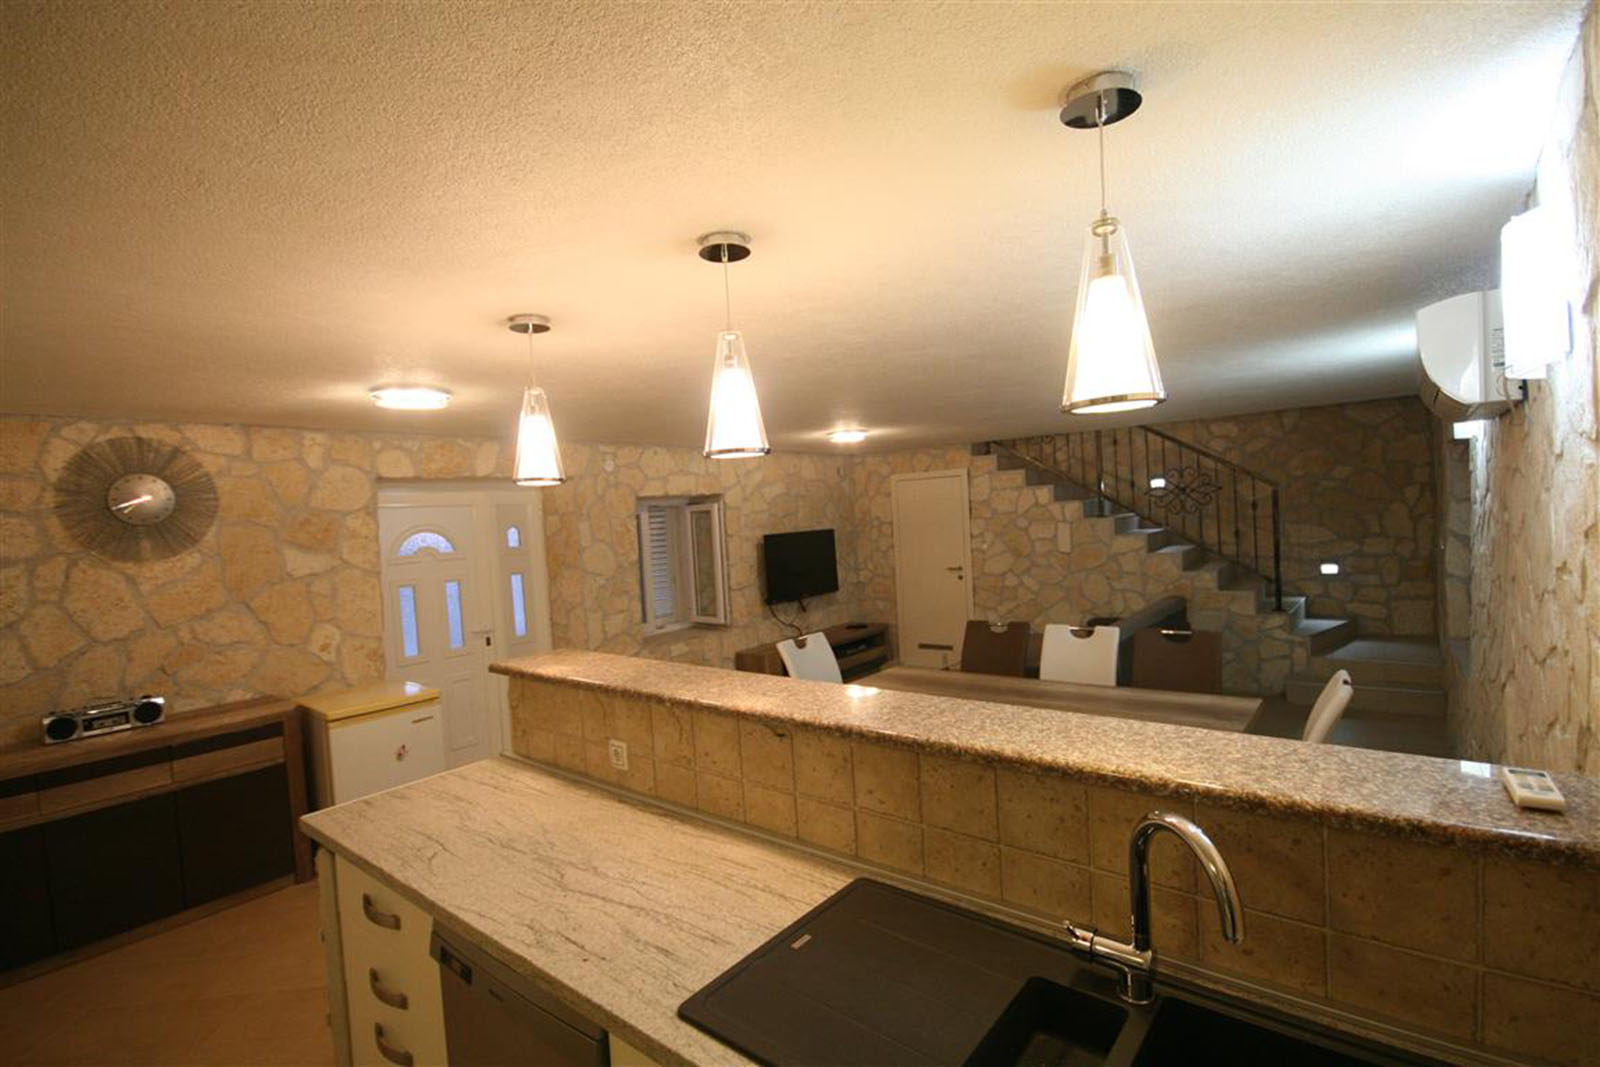 apartments4U-croatia-dugi-otok-indoor-7